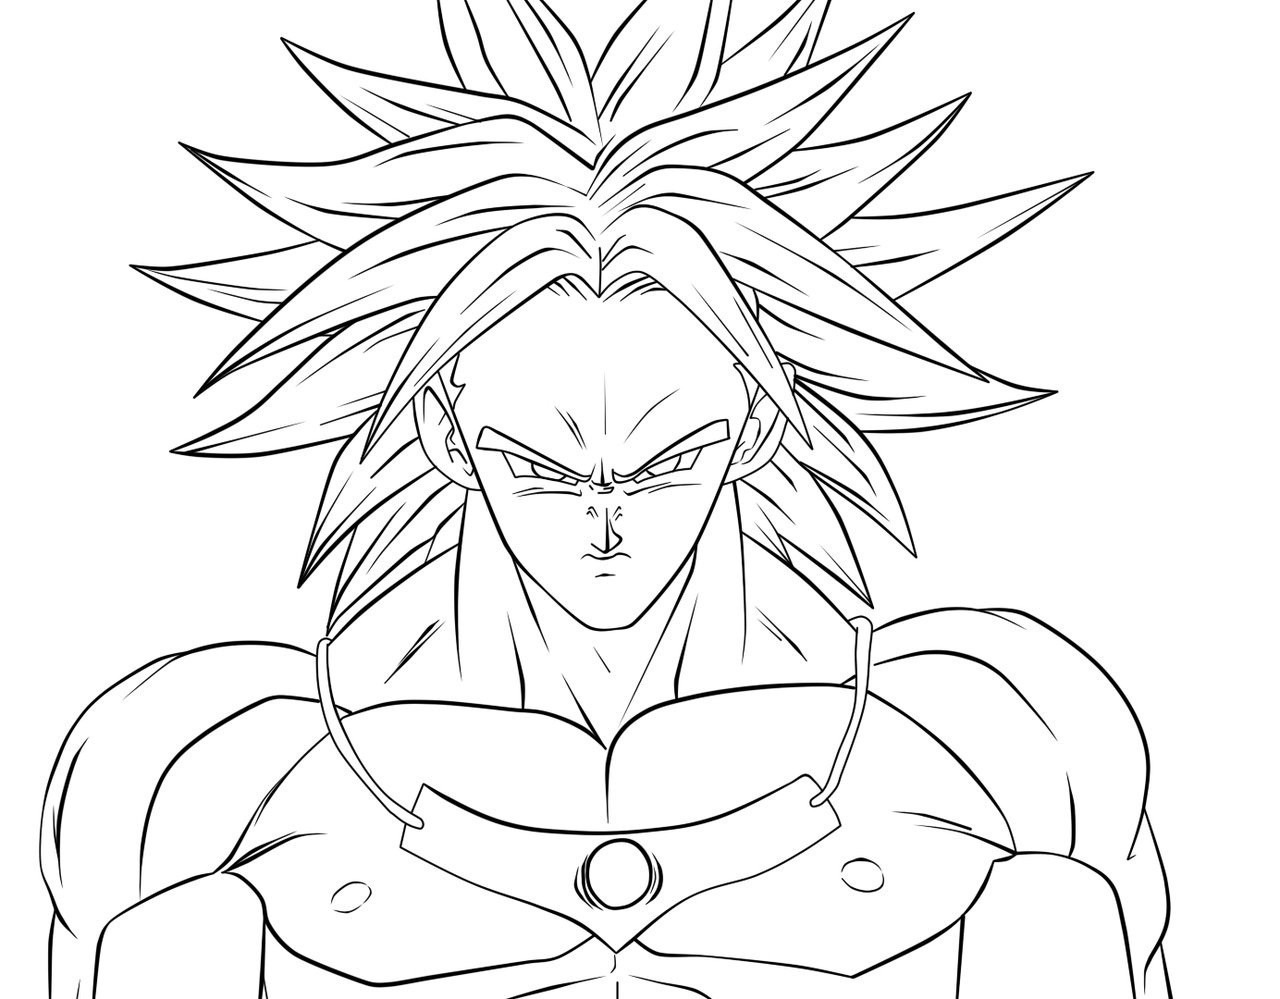 COLOREA DRAGON BALL 】- Dibujos Para Pintar